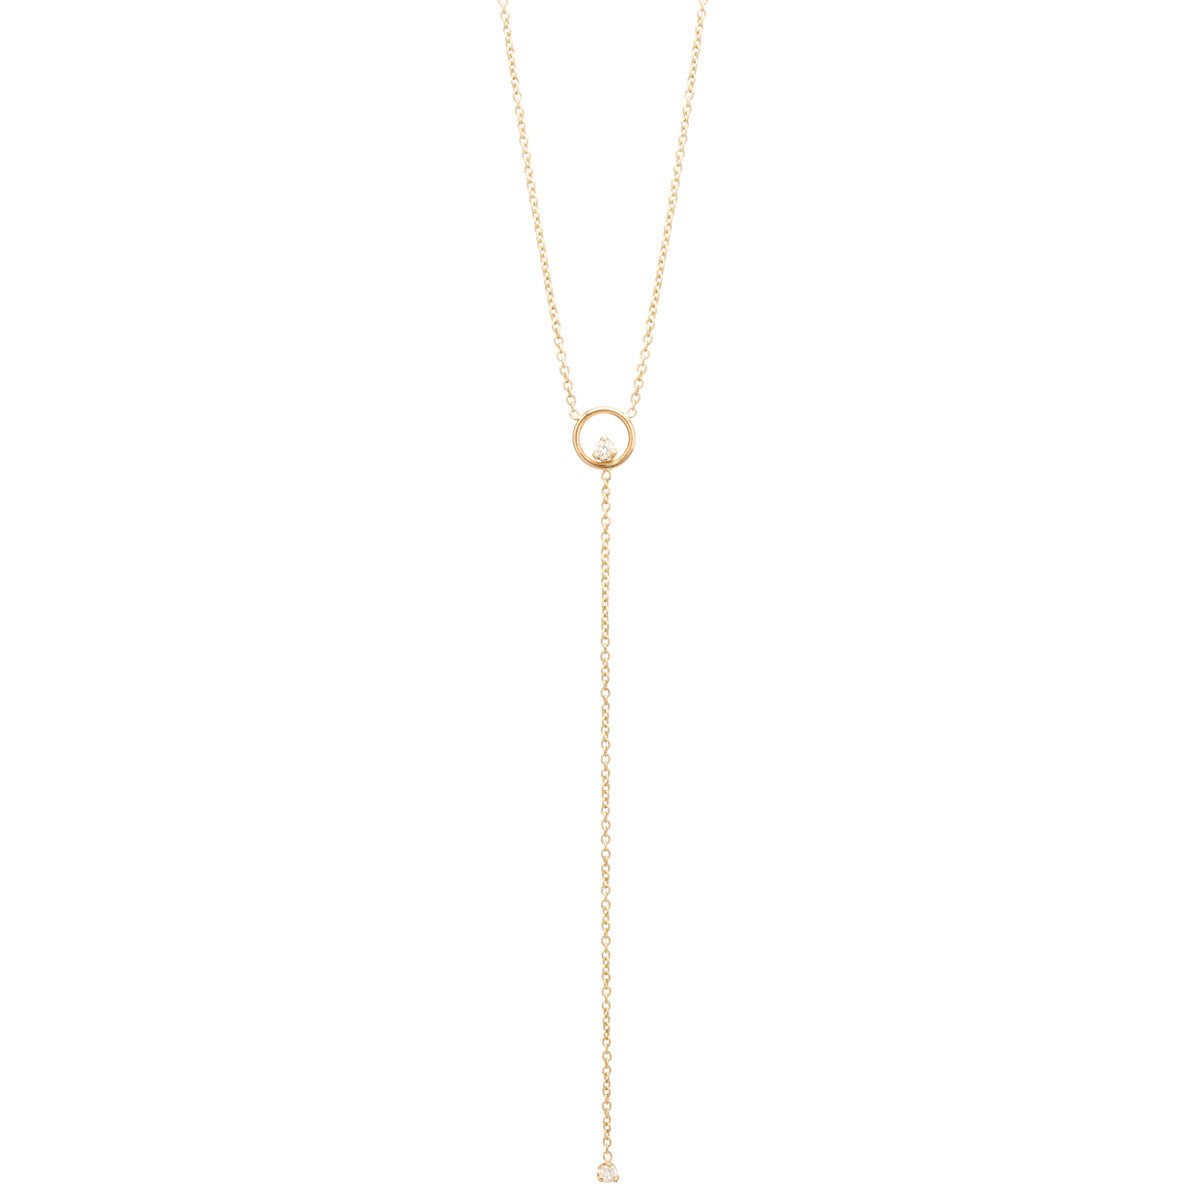 Zoë Chicco 14kt Gold Circle Prong White Diamond Lariat Necklace